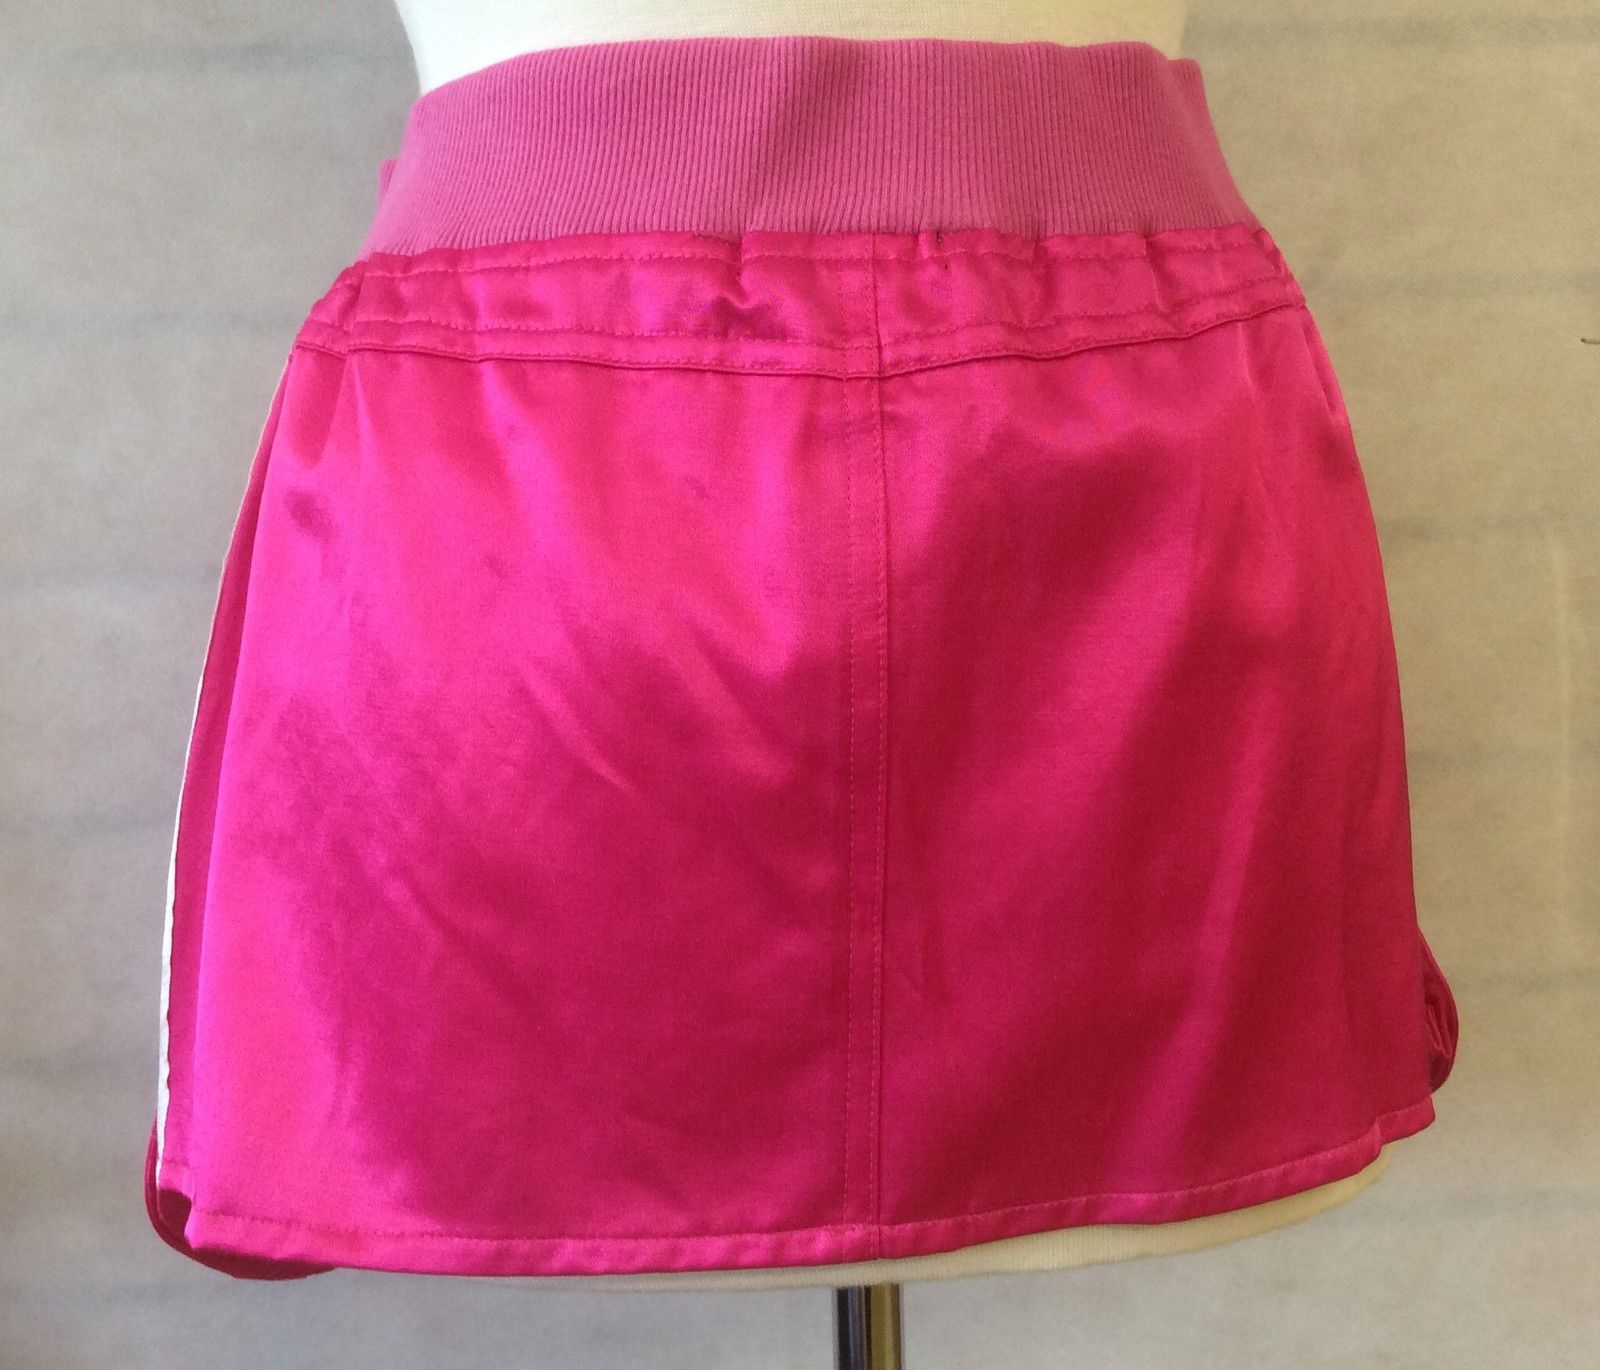 e084b7f04 Cerise Pink Satin Look Ladies Mini Skirt Size's 12 & 14 | eBay